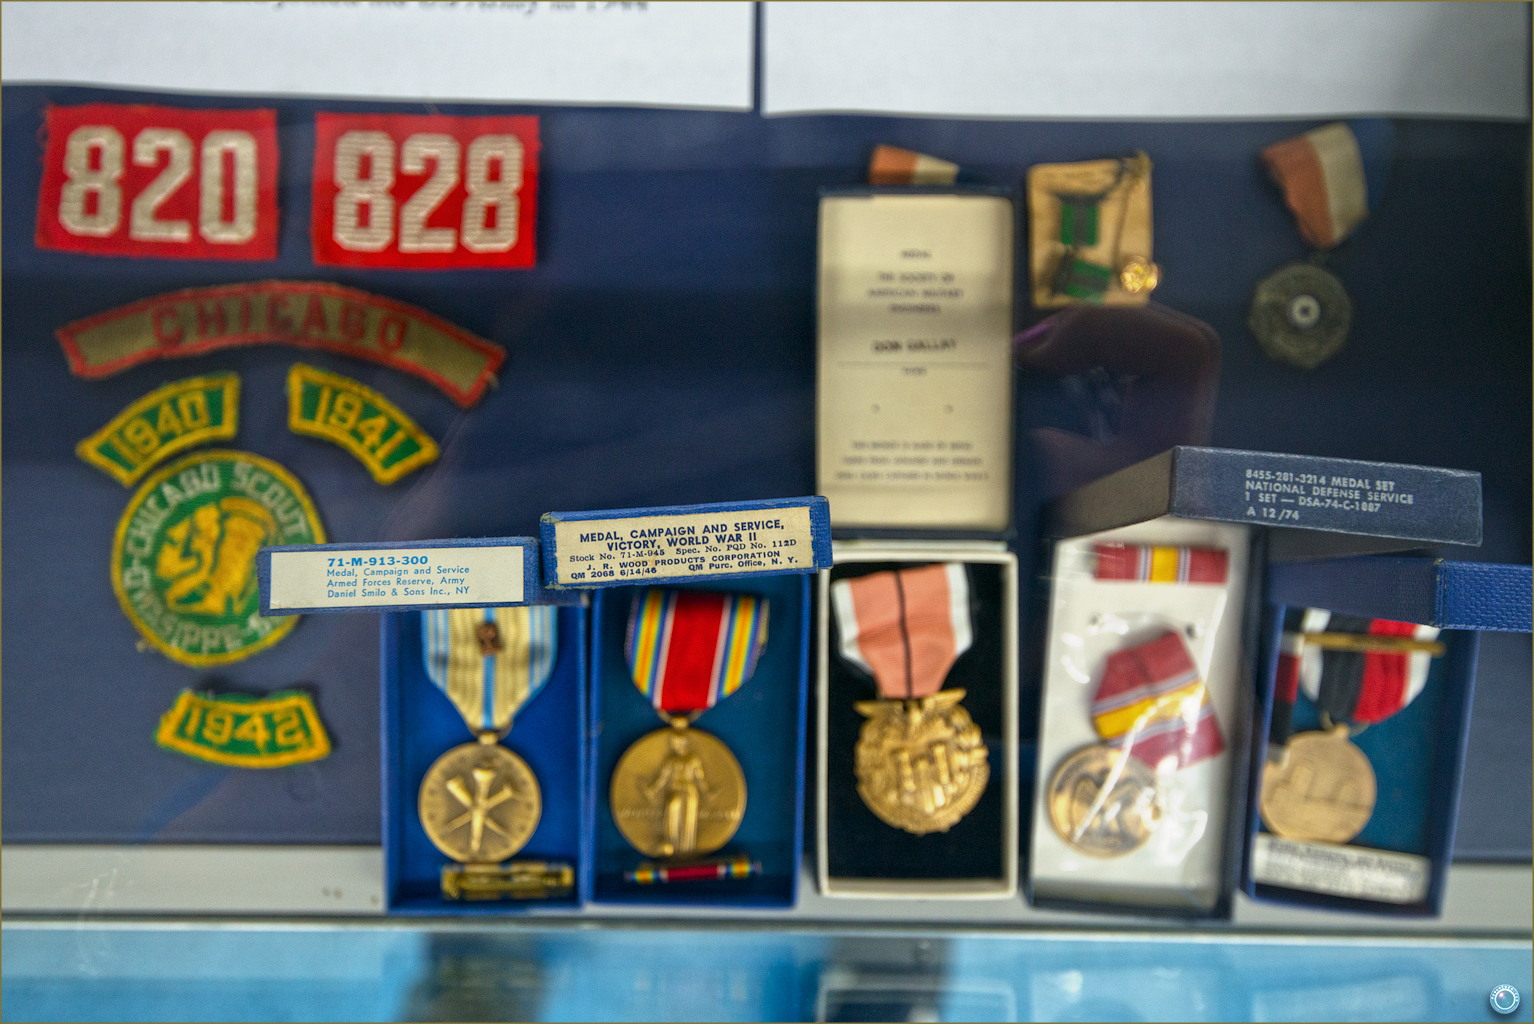 57 Russell Military Museum WW II Medal, Campaign and Service